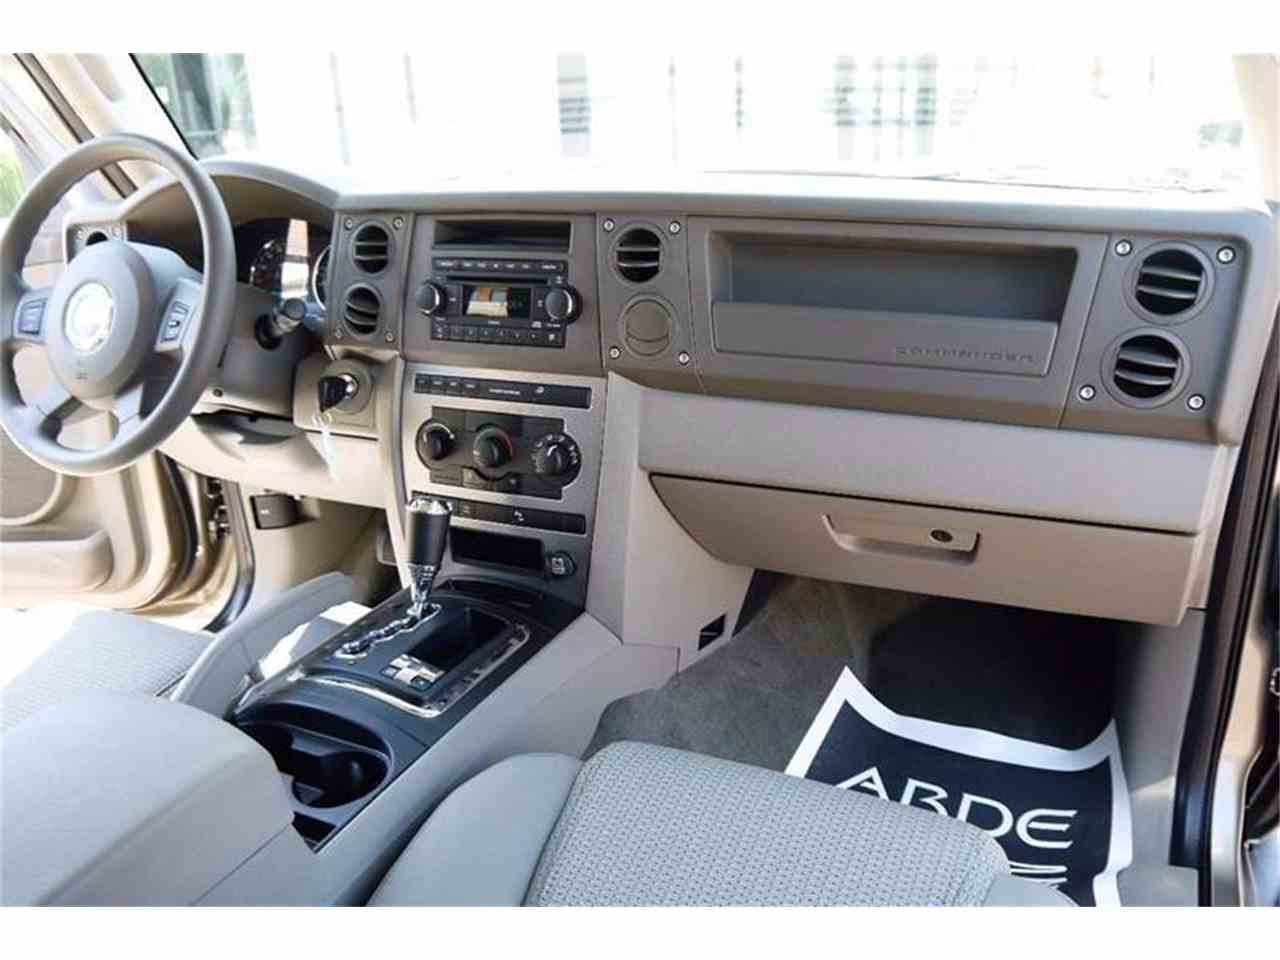 Large Picture of 2006 Jeep Commander located in Brentwood Tennessee - $24,900.00 - LBTI